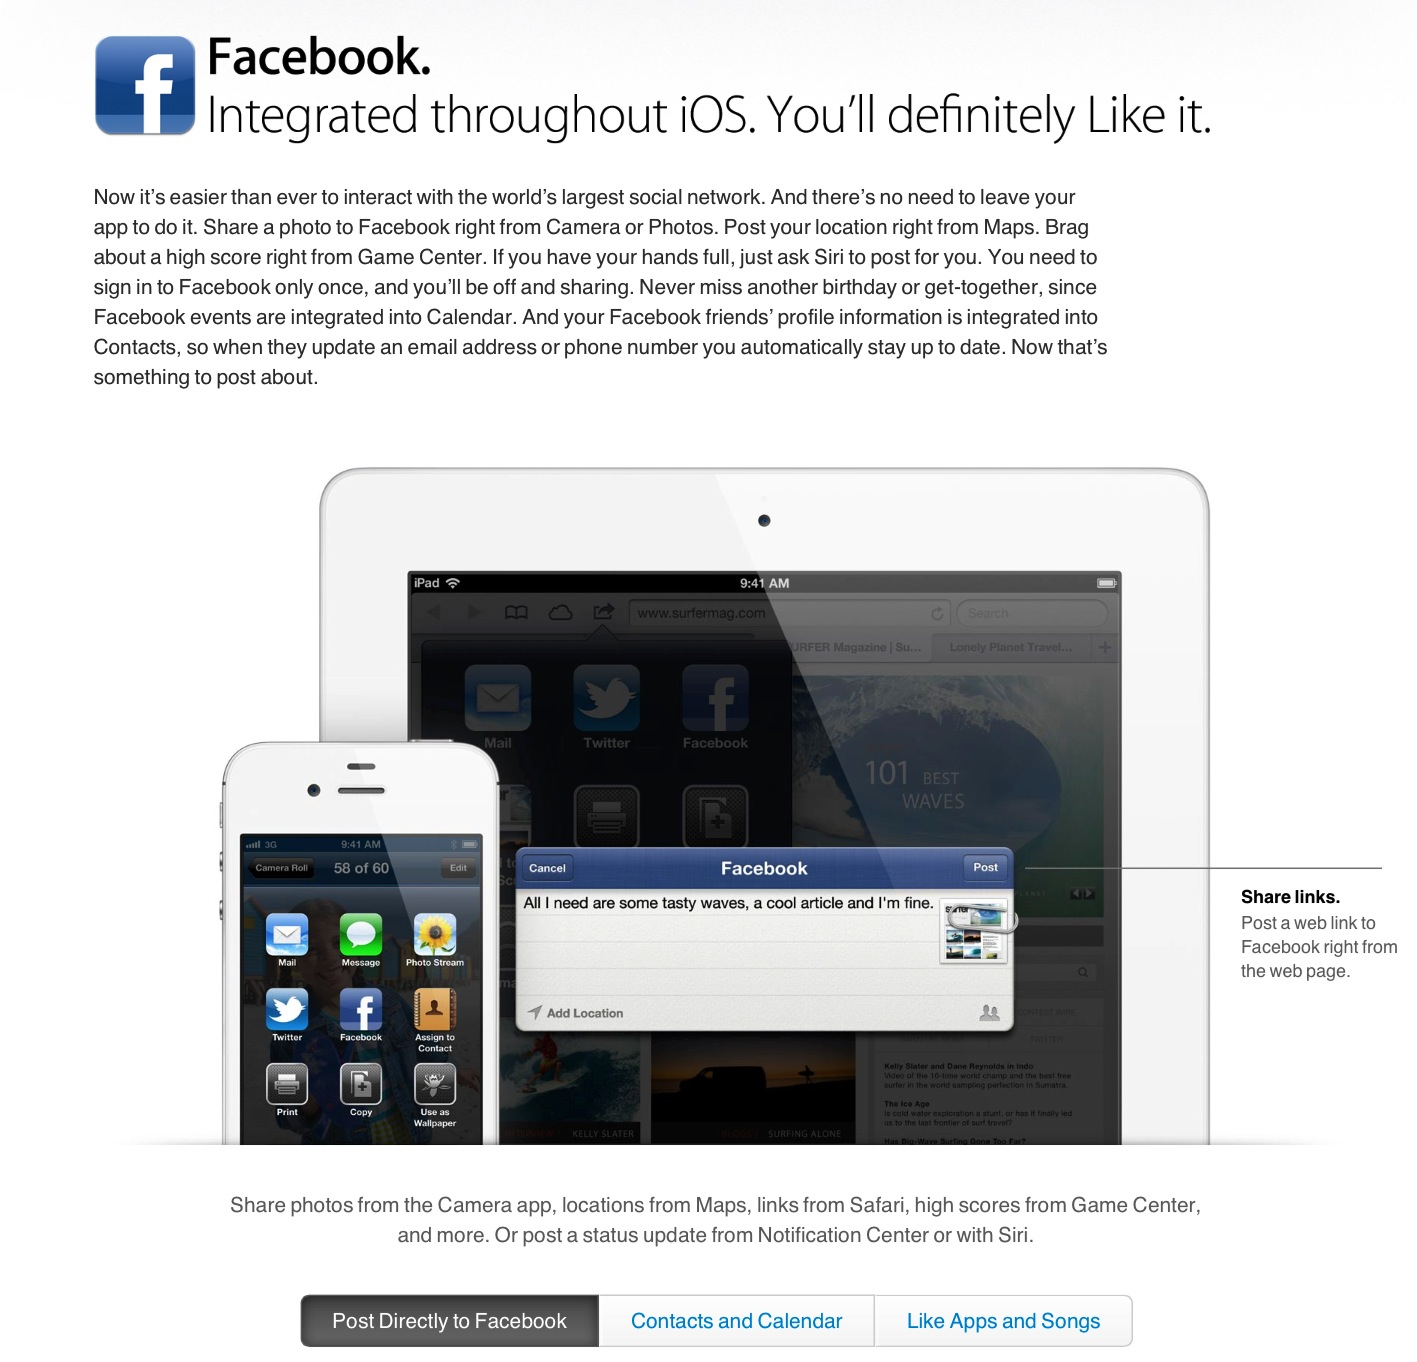 Facebook Gets Integrated Into iOS 6